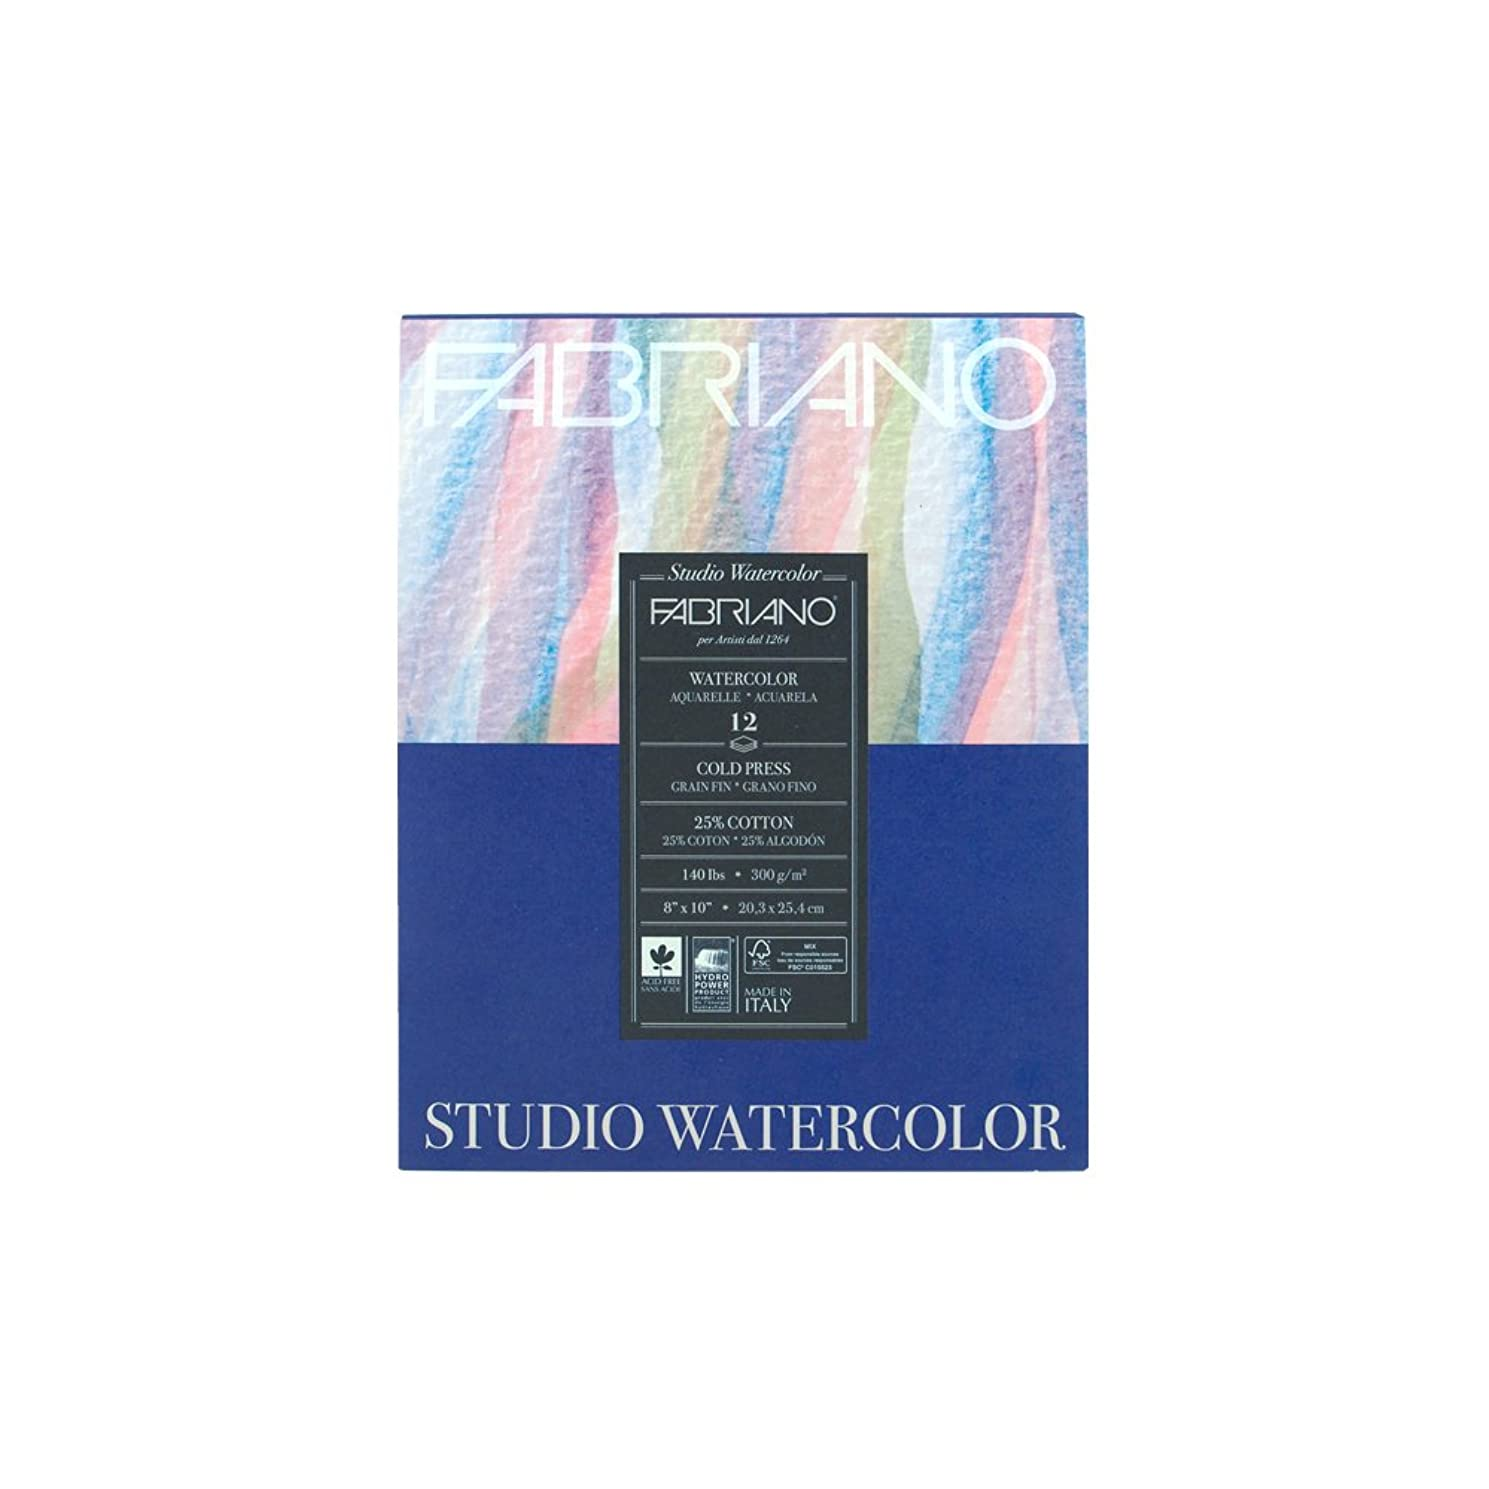 Fabriano Studio Watercolor Cold Press Pad, 8 x 10 Inches, 140 lb, 12 Sheets